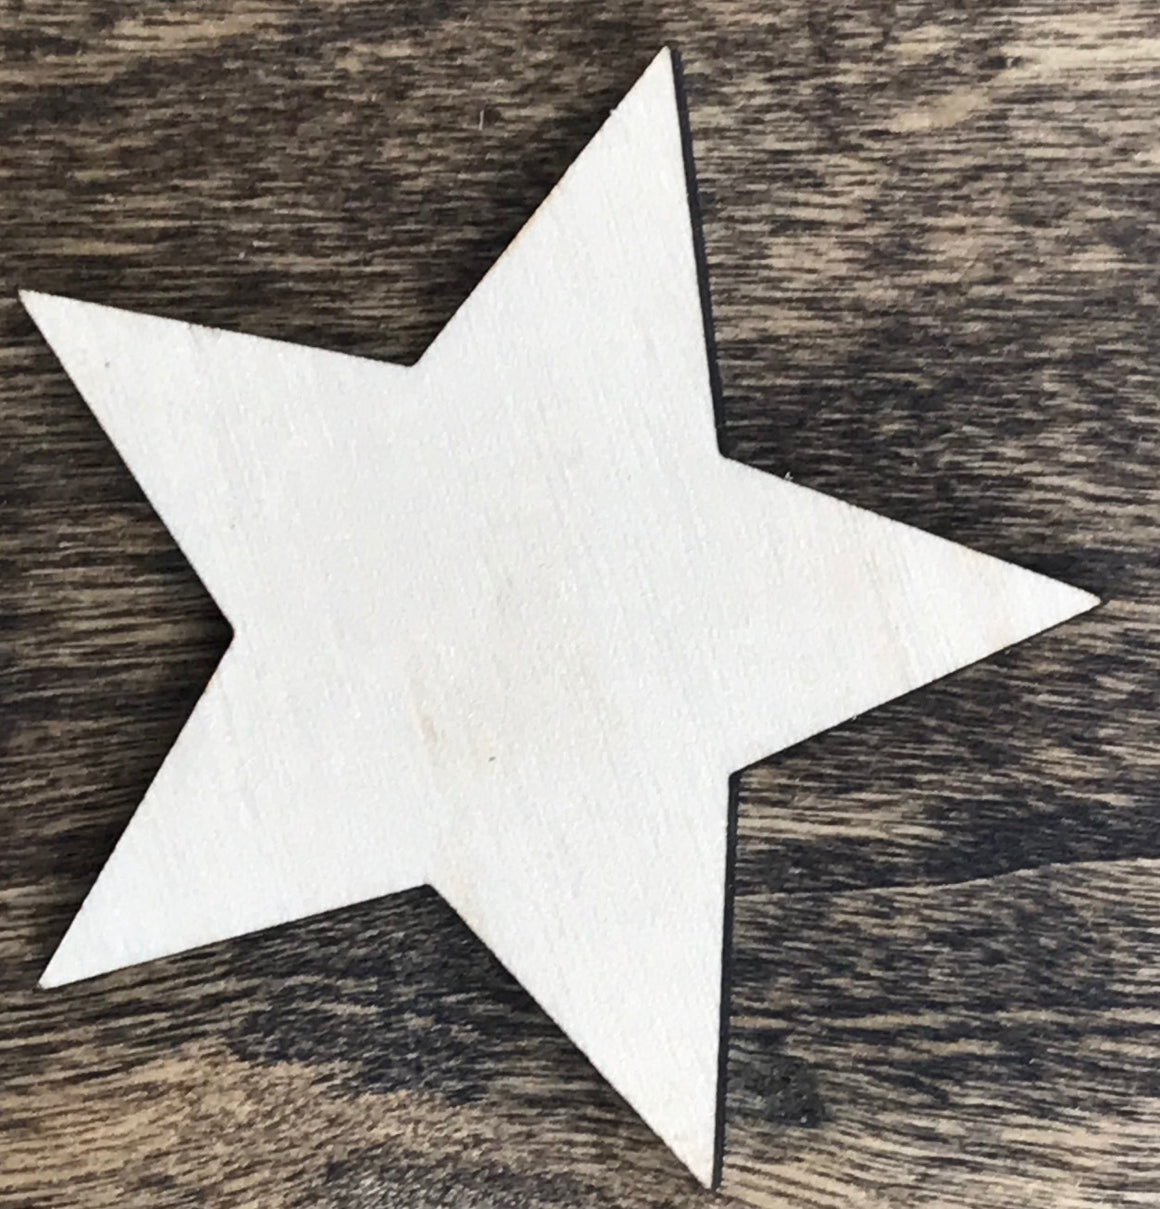 Star w/ Sharp Corners - Unfinished Wood Blank